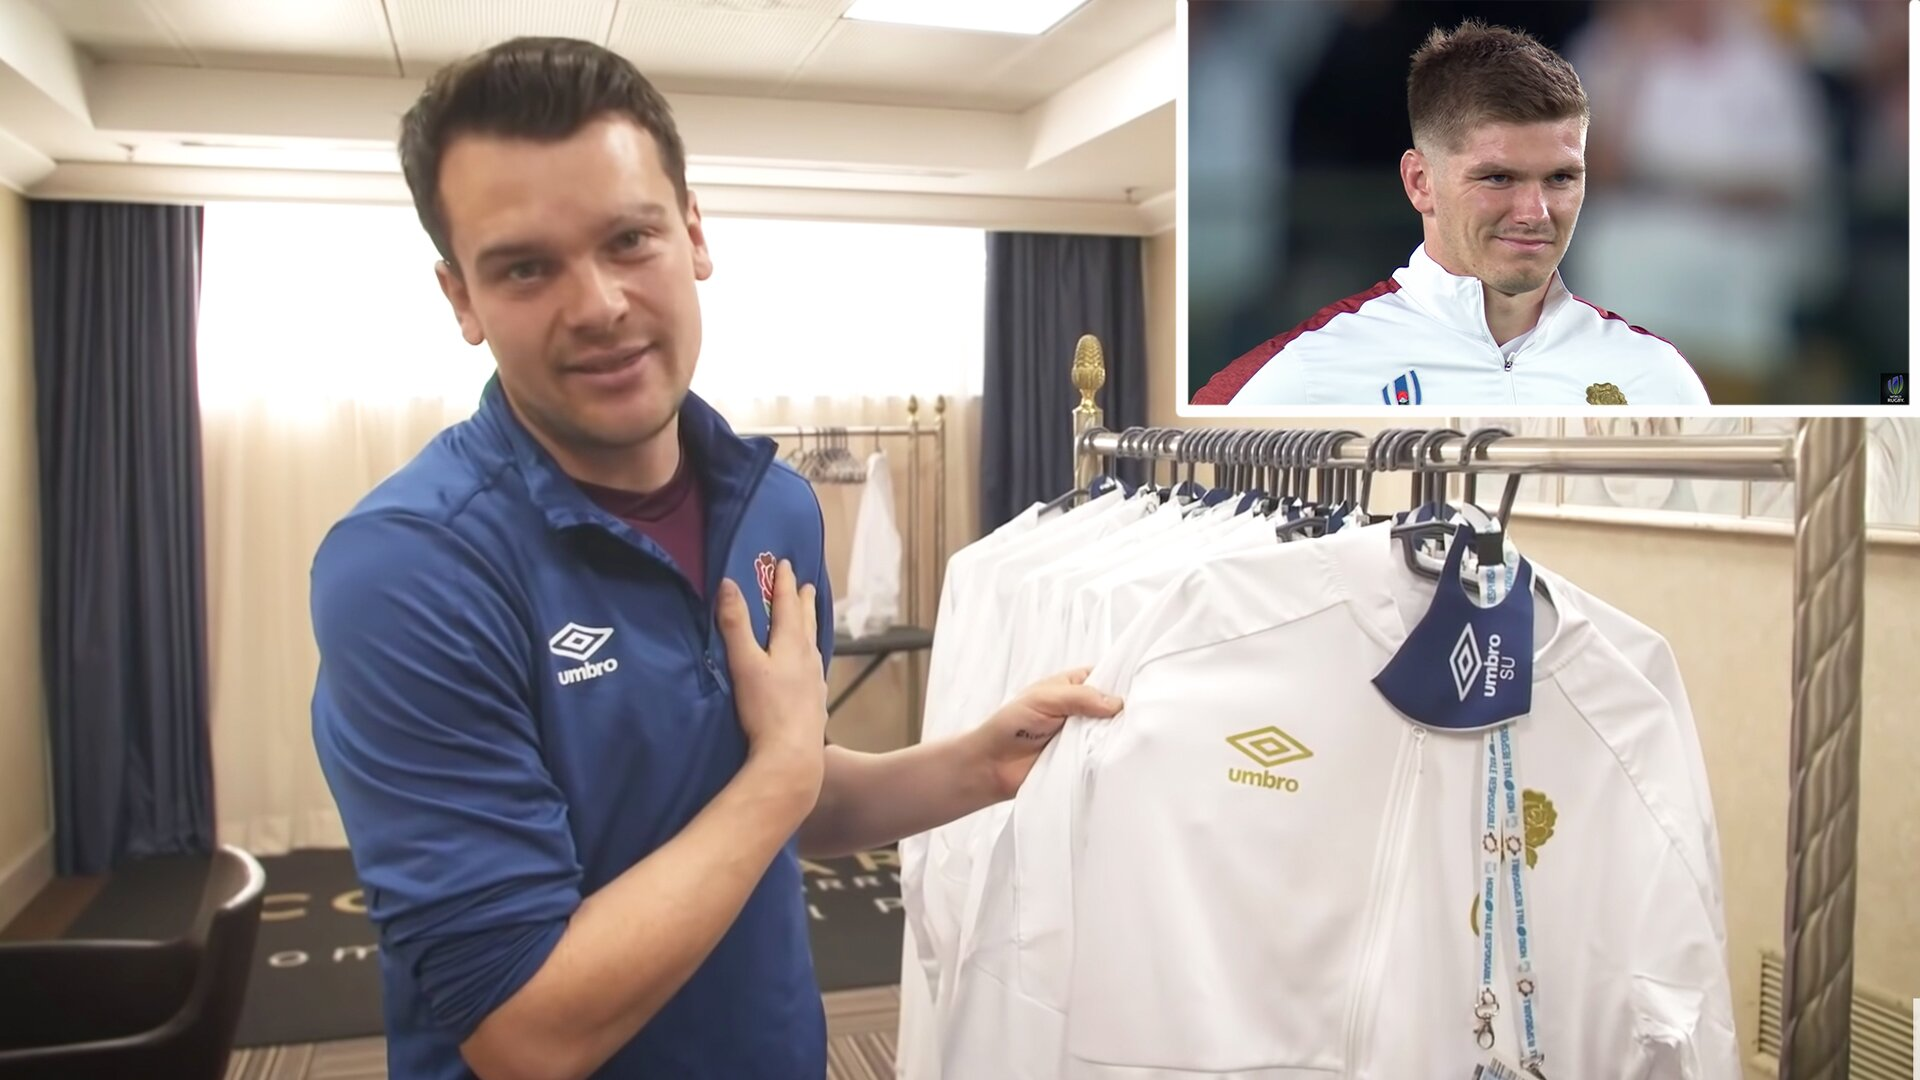 England team manager reveals real reason as to why England now wear gold before games